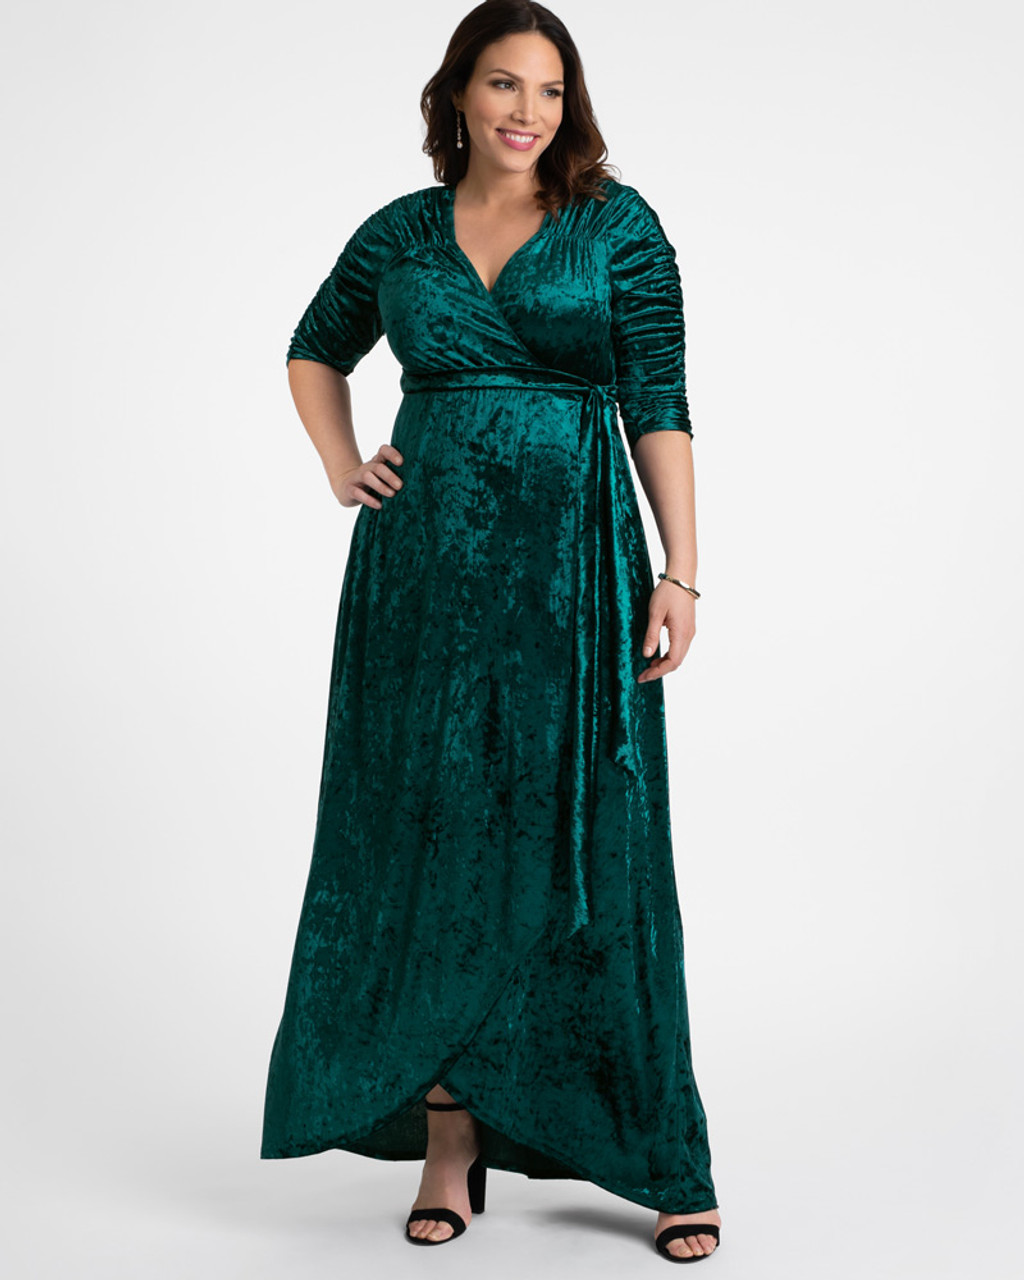 Kiyonna Women\'s Plus Size Cara Velvet Wrap Dress~Green/Teal*13183002